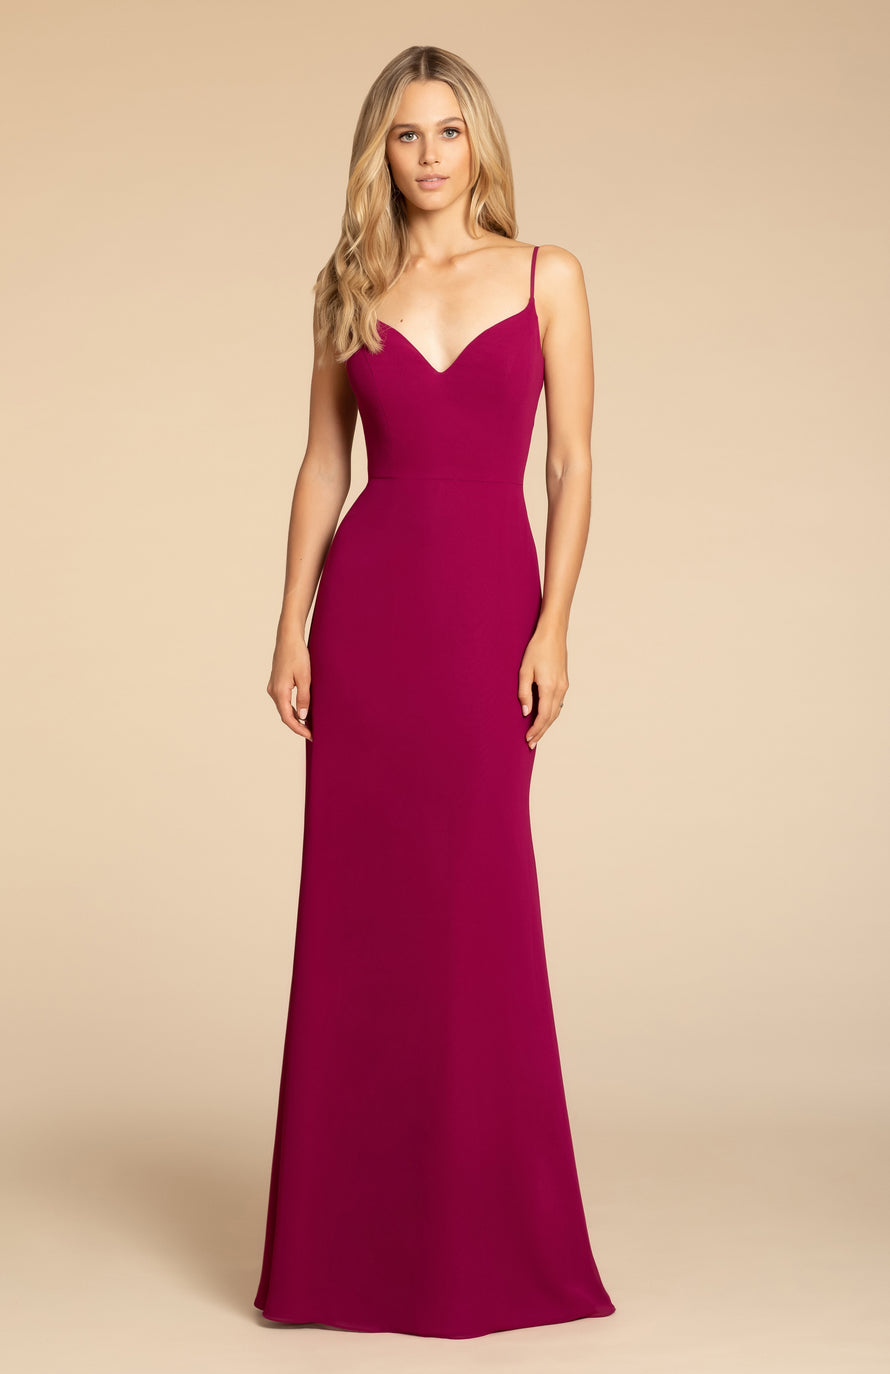 Hayley Paige Occasions Long Bridesmaid Dress - 5910 front